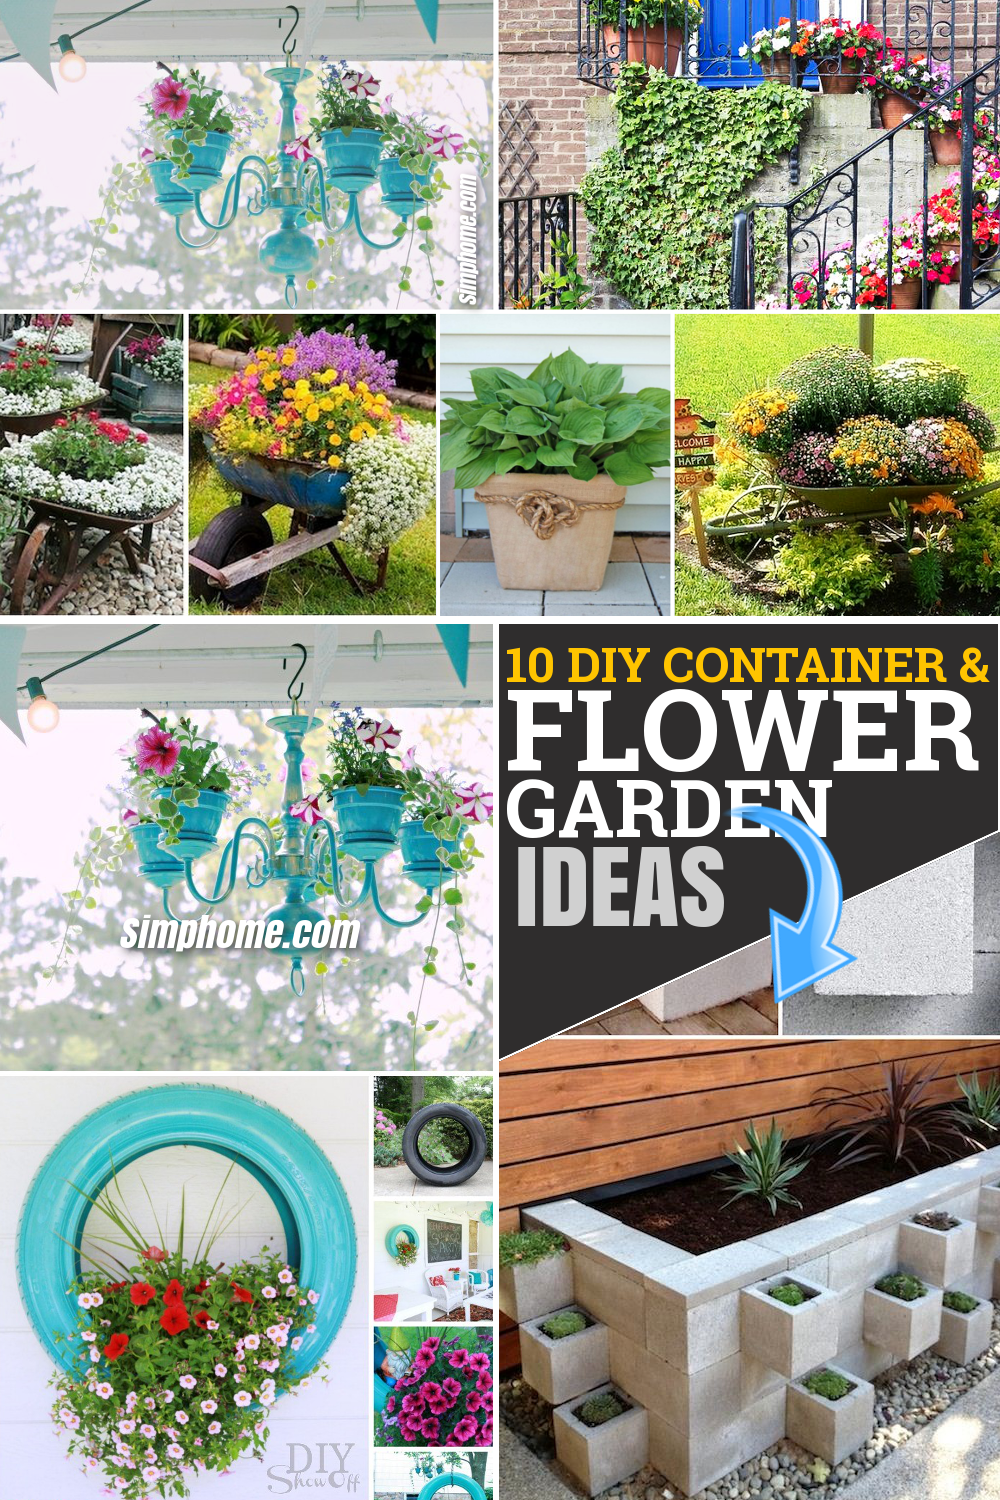 40 Diy Flower Garden Planter And Container Ideas Simphome Raised Beds Flowers